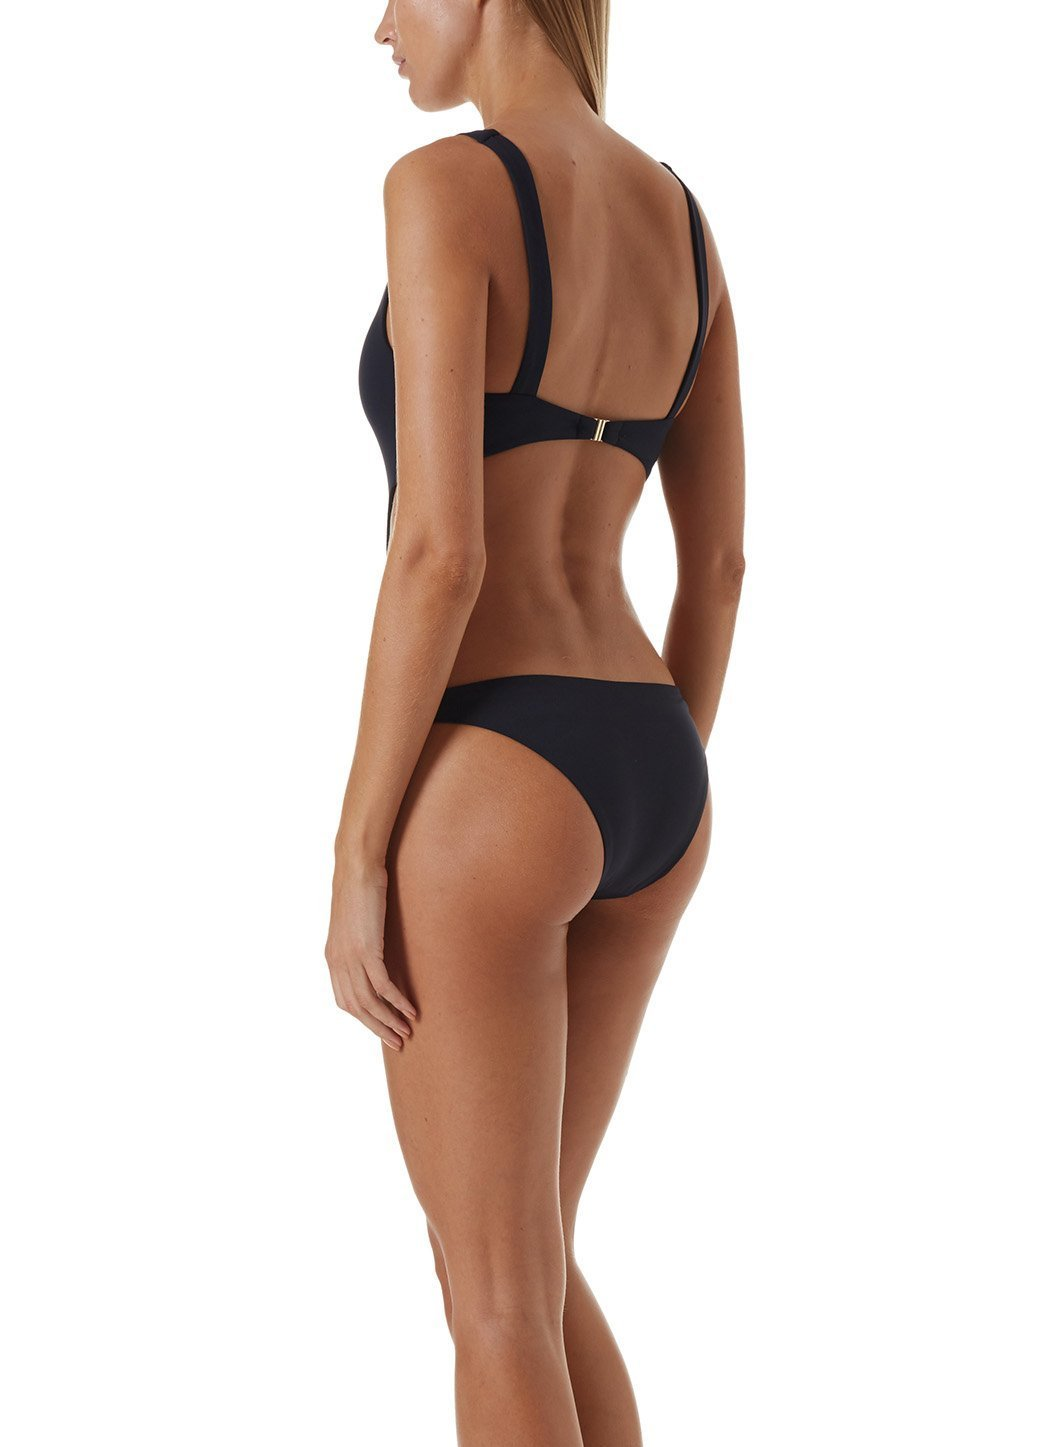 geneva black swimsuit